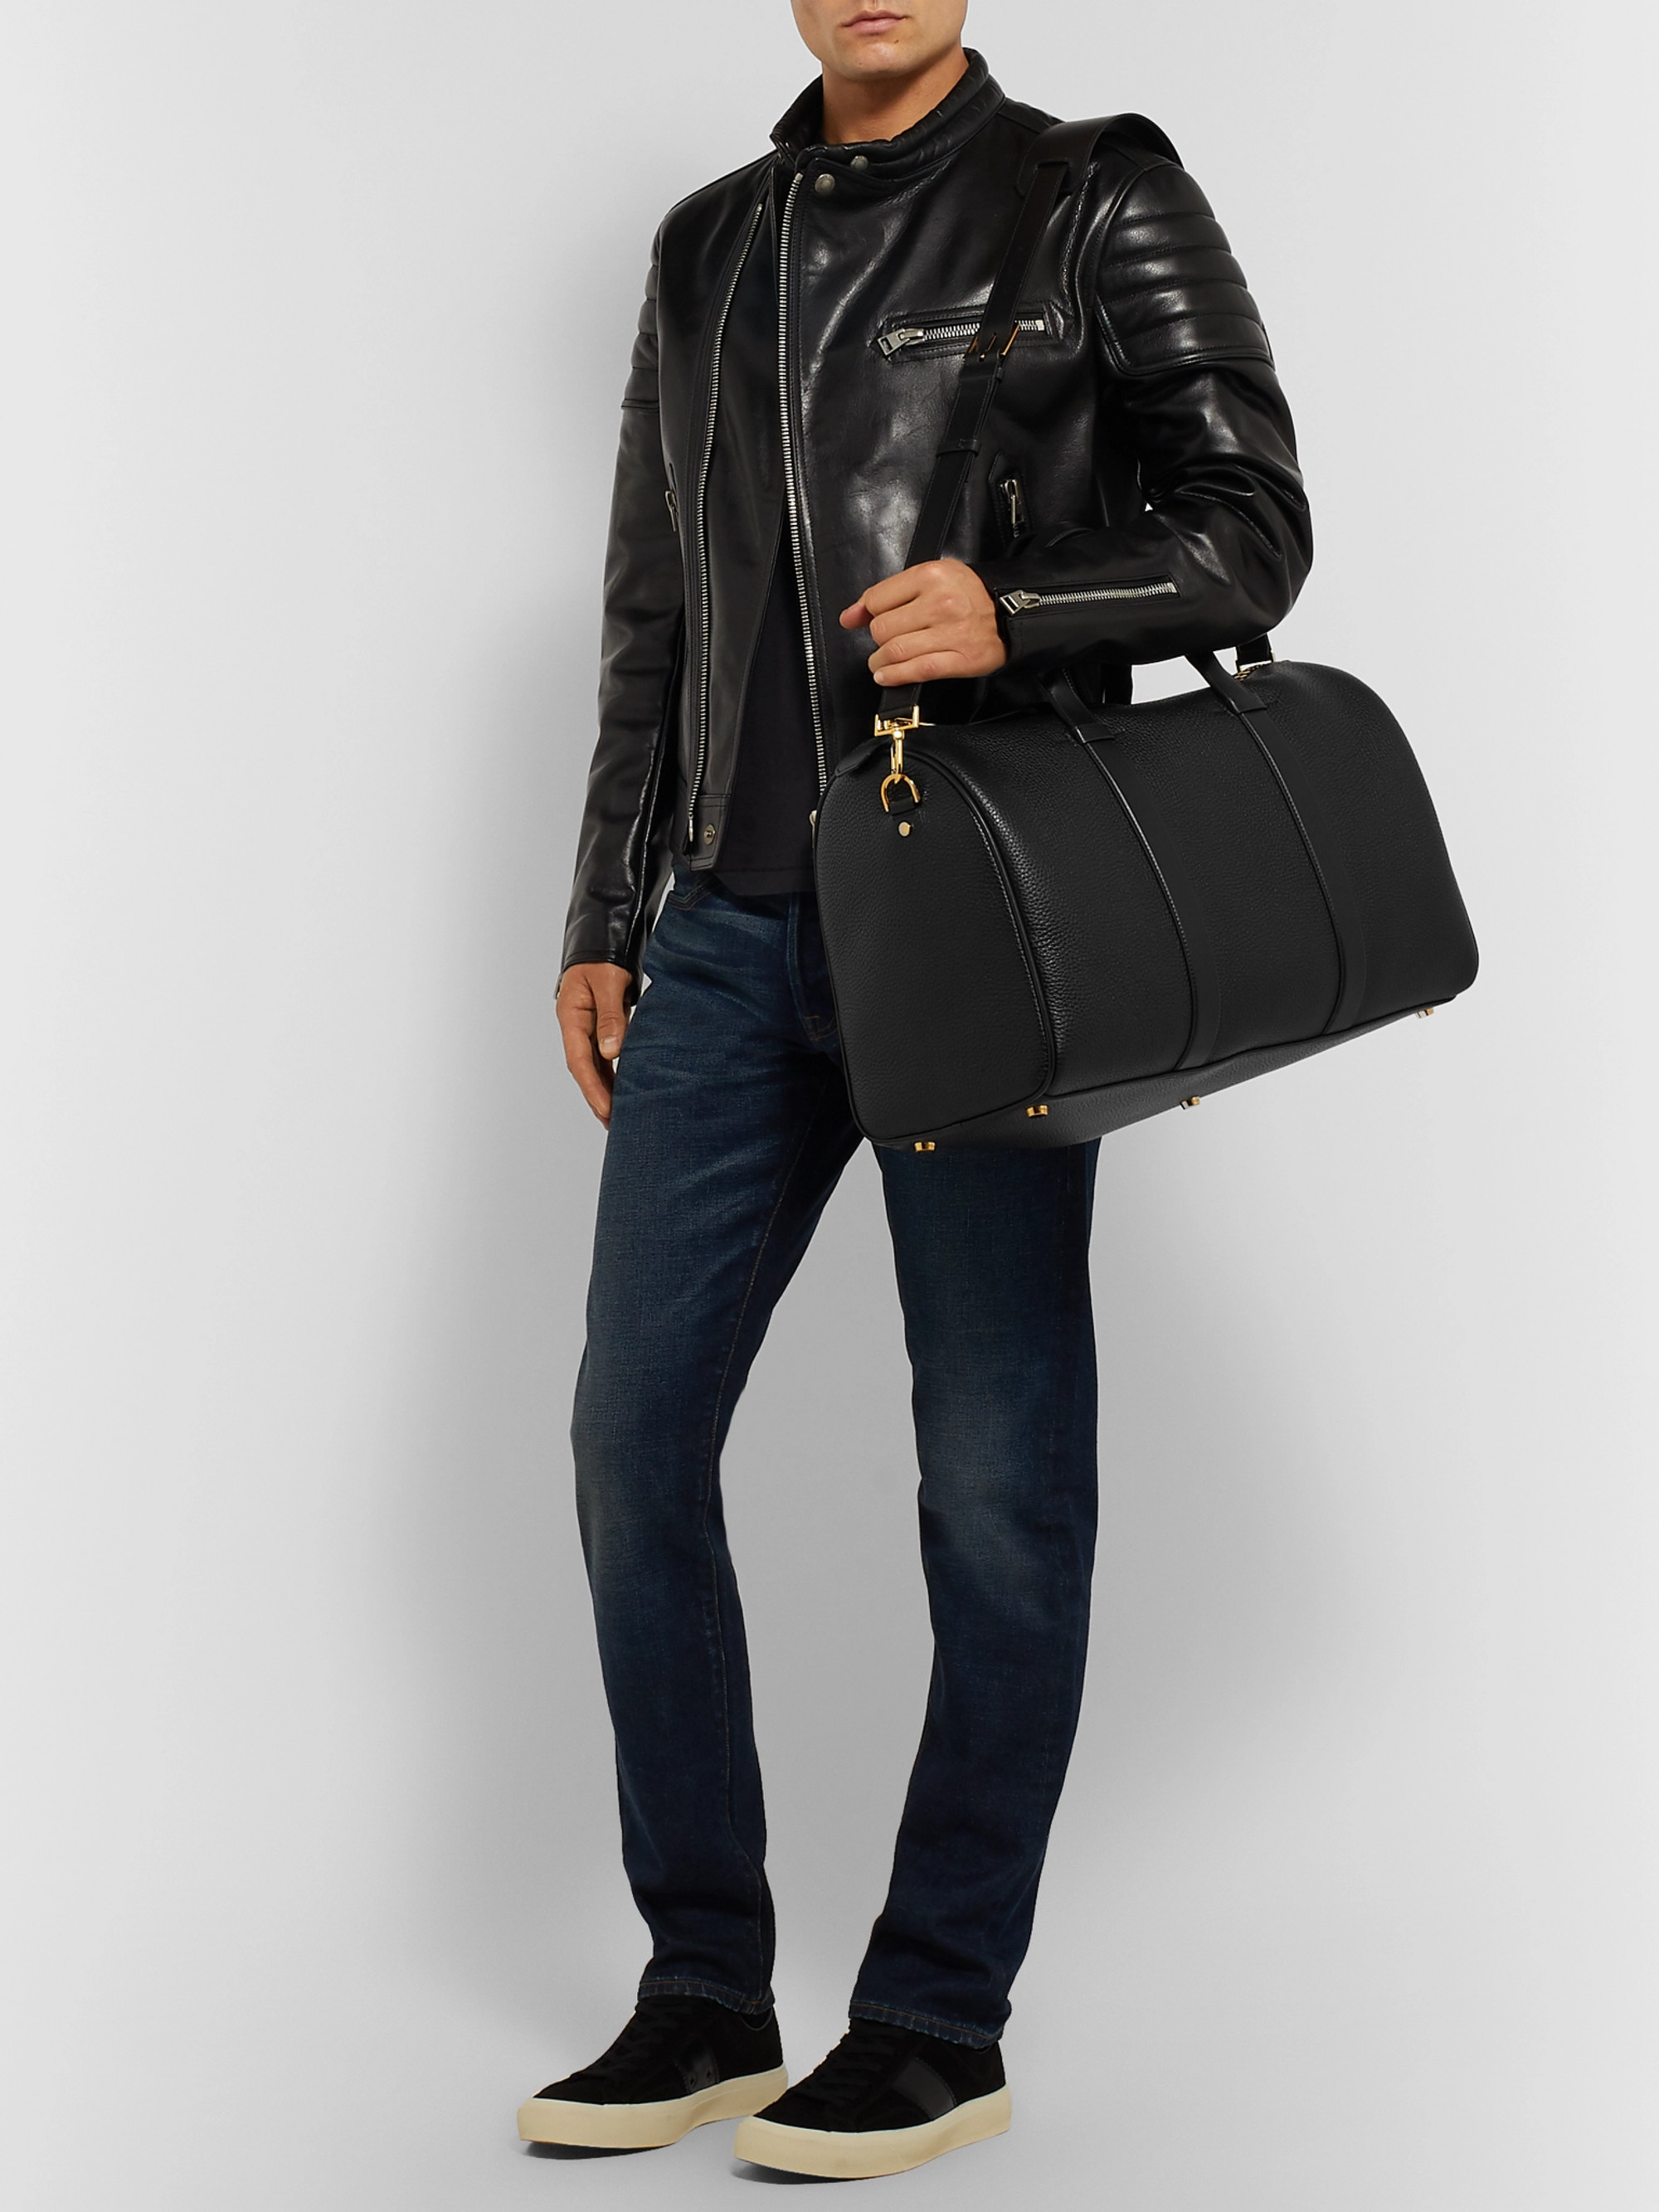 TOM FORD Full-Grain Leather Holdall